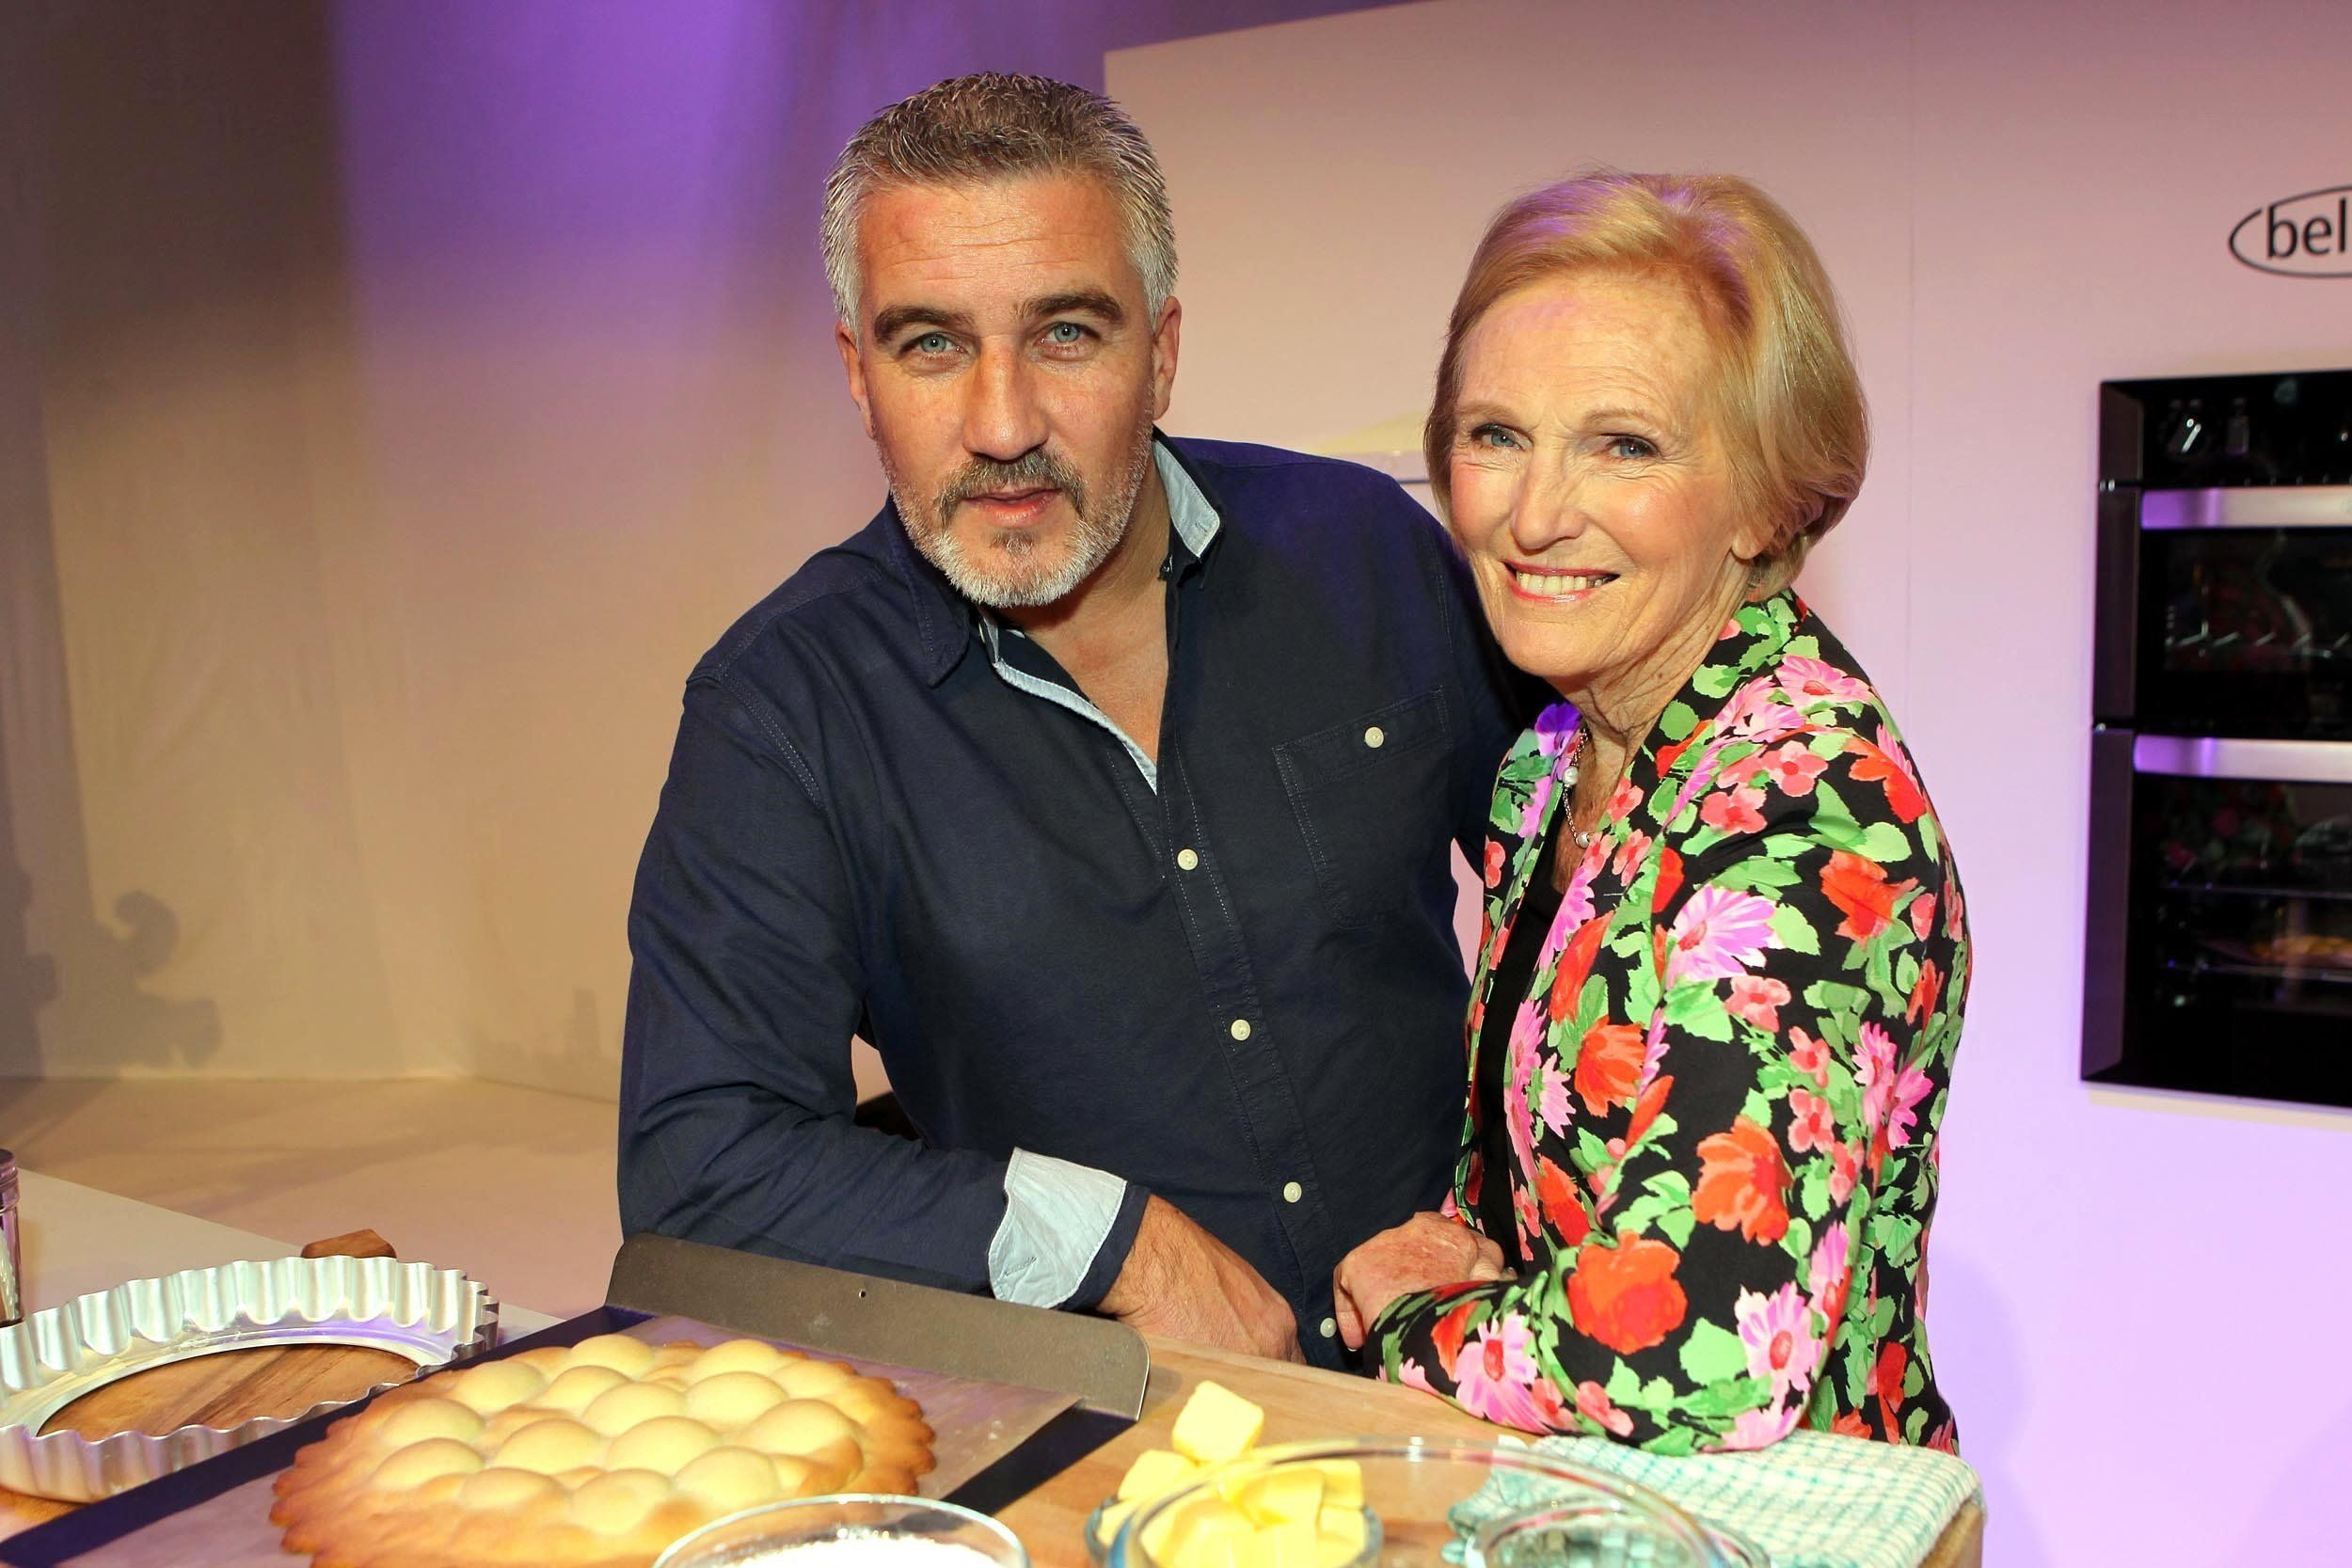 Paul Hollywood To Replace Mary Berry On US Version Of 'Great British Bake